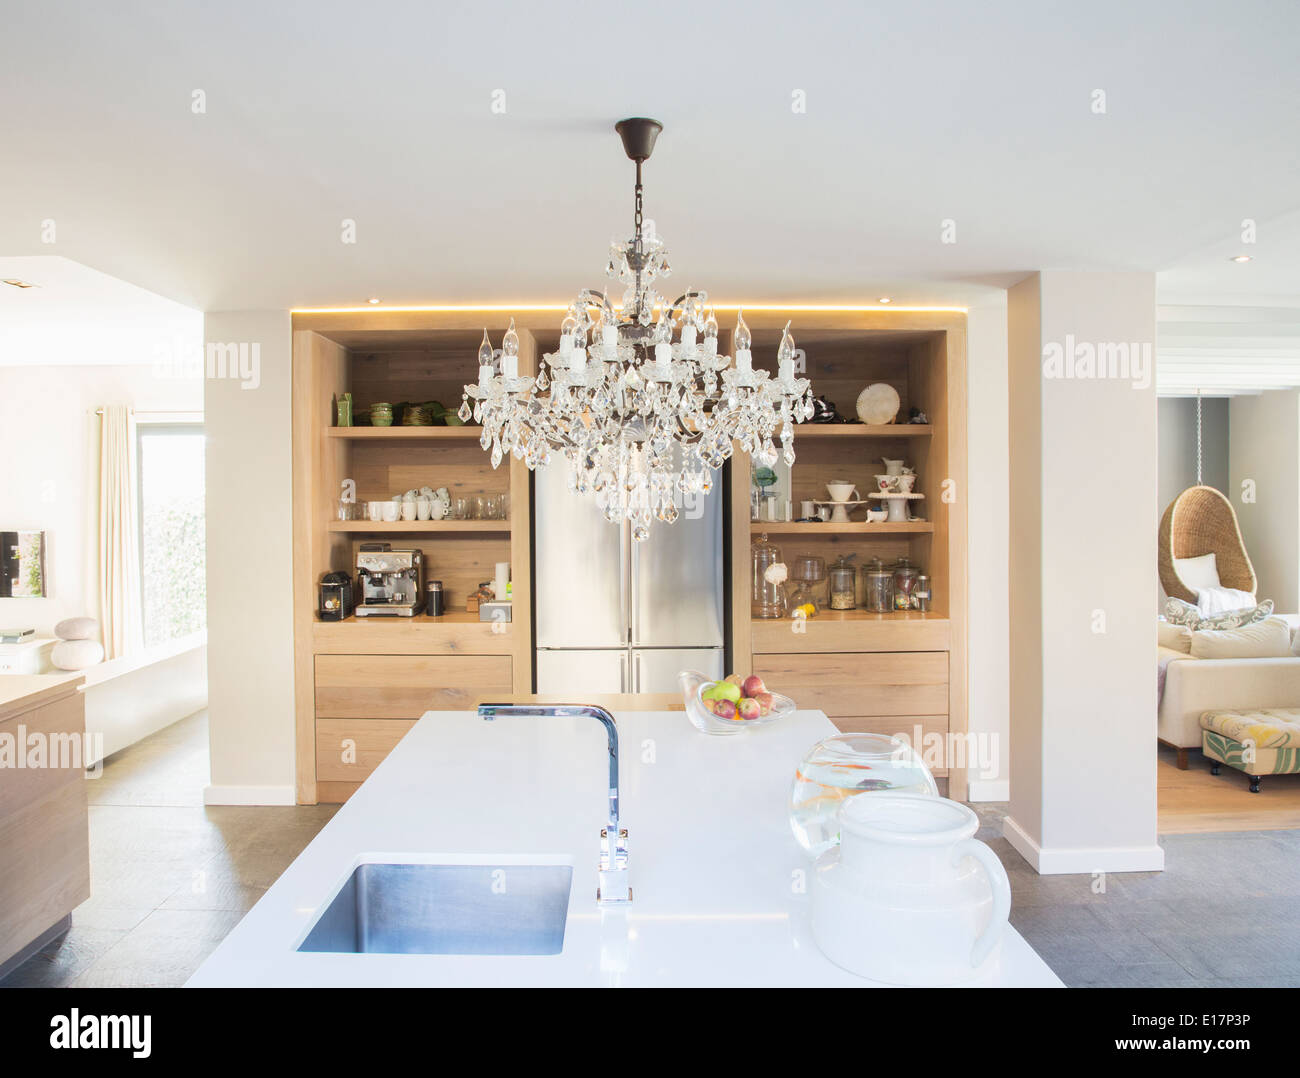 Chandelier Stockfotos & Chandelier Bilder - Alamy